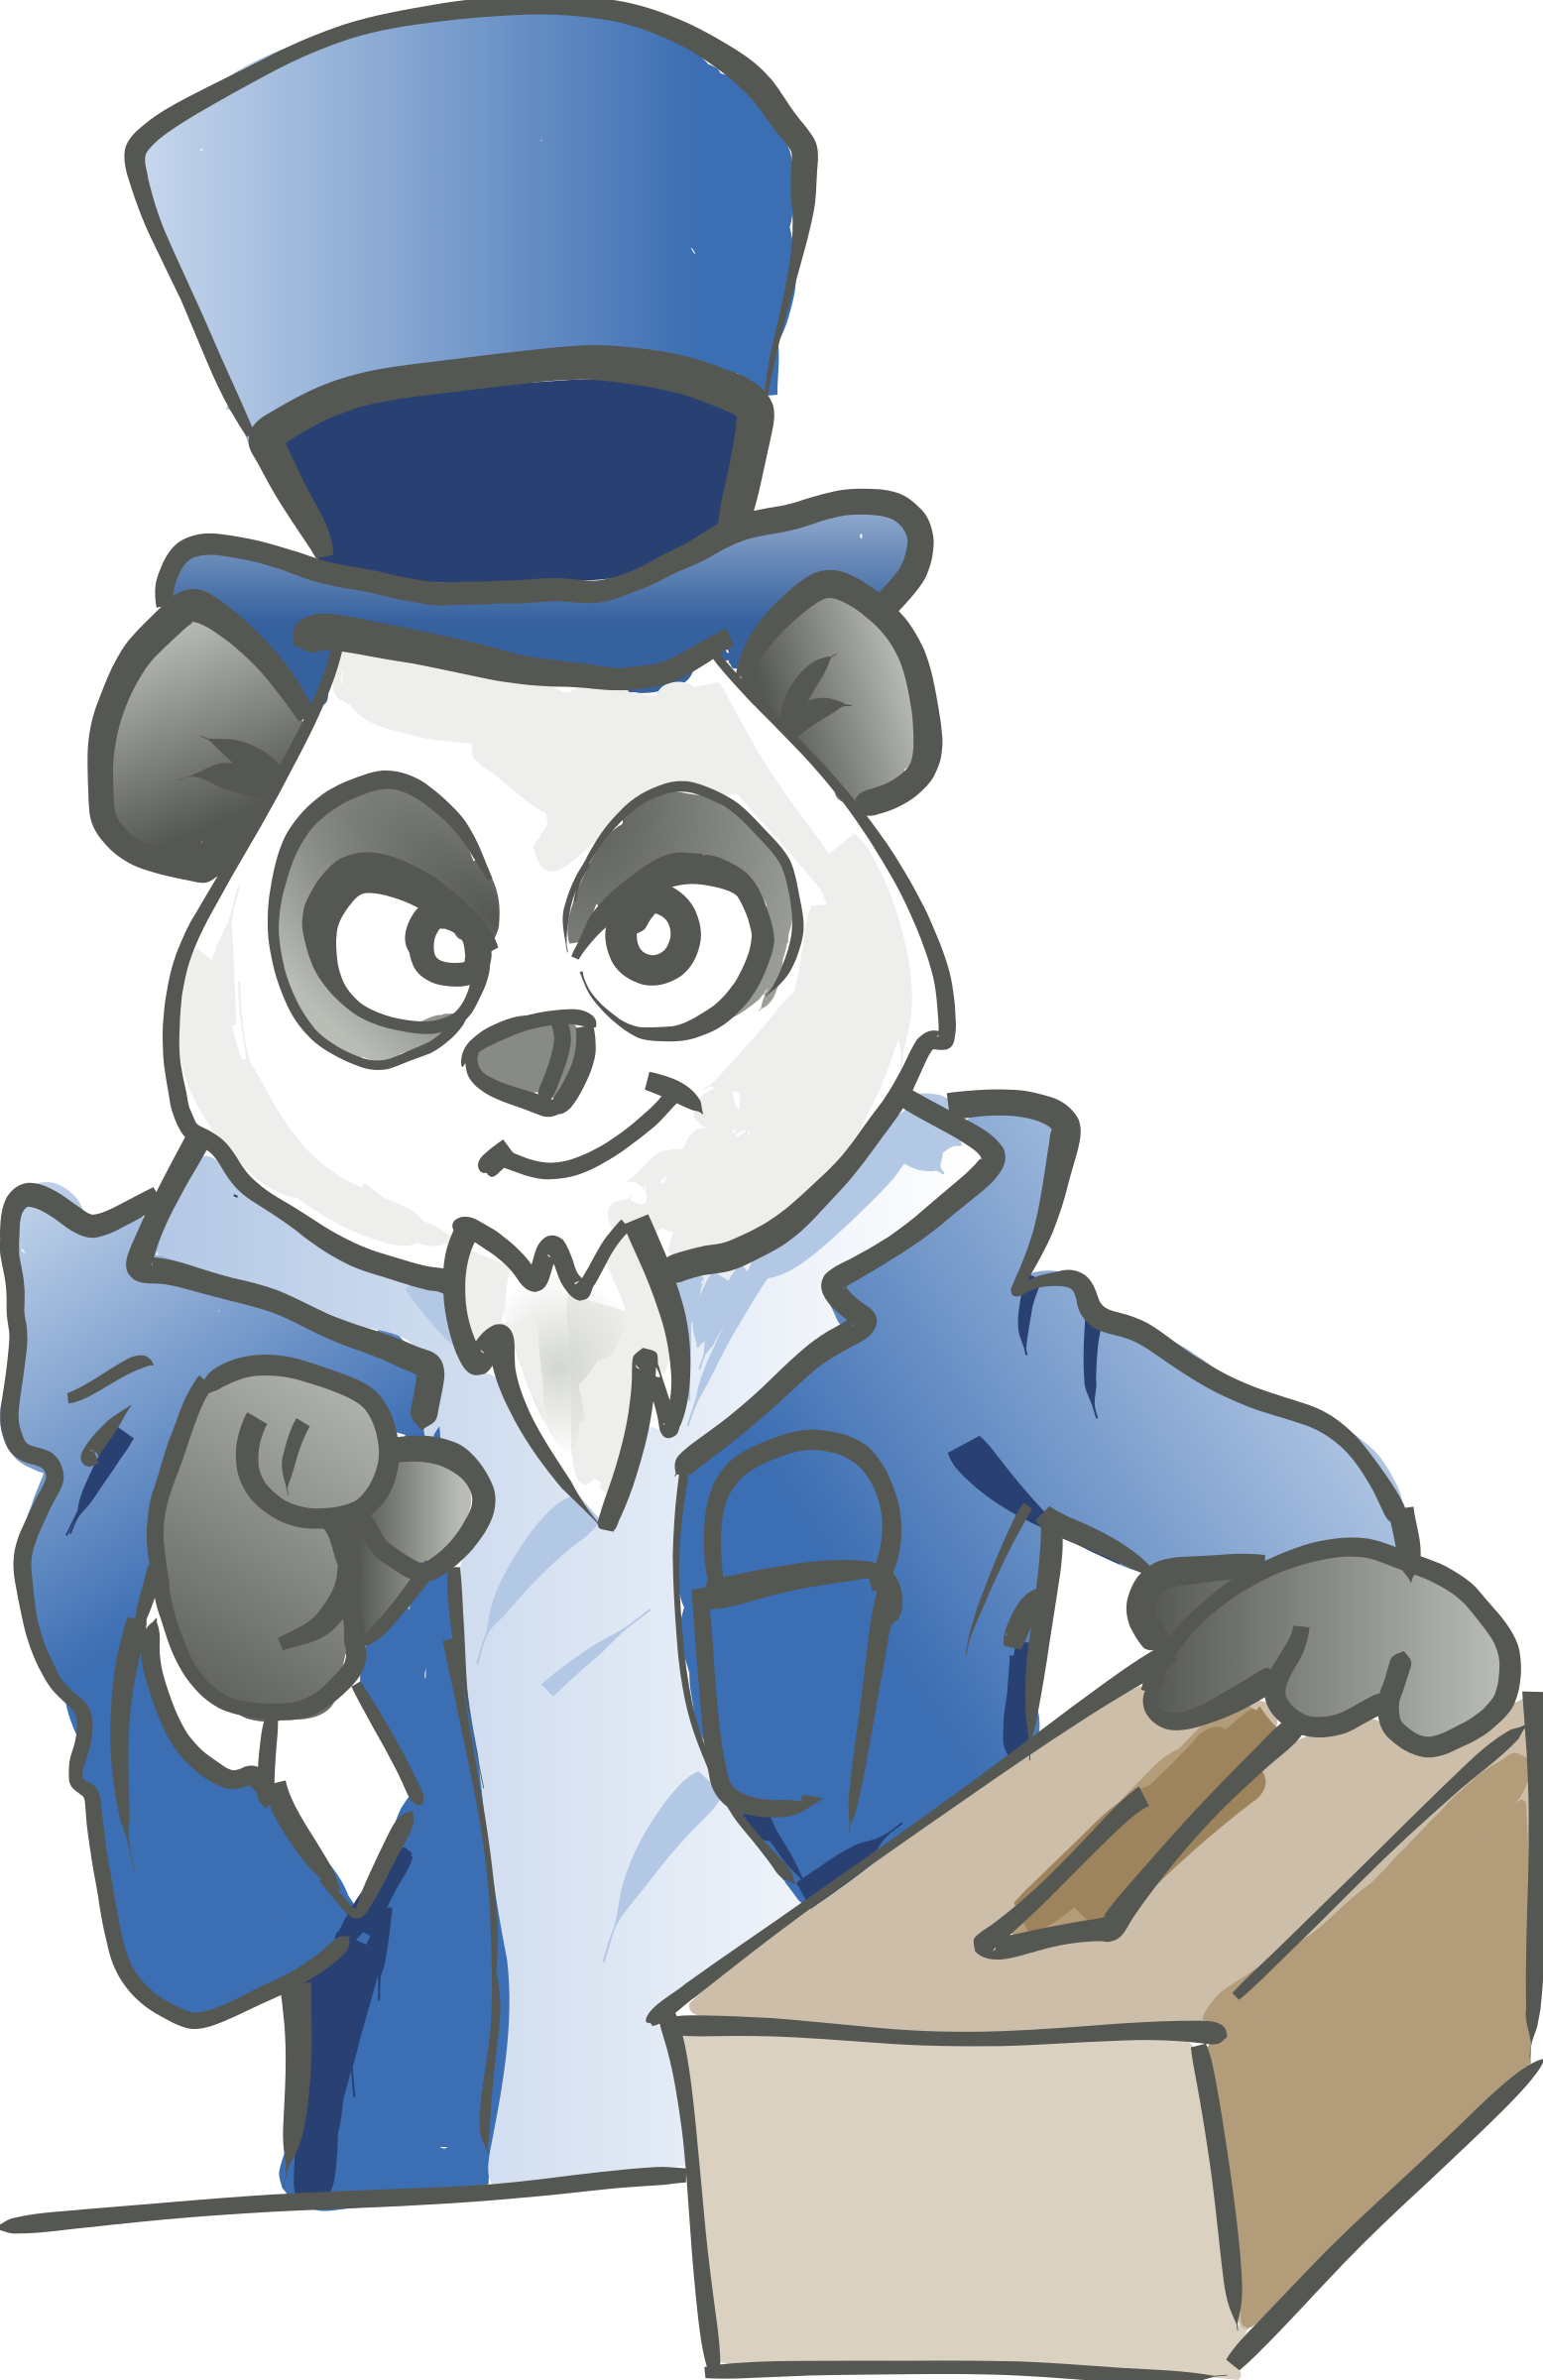 Election panda. Pointing clipart voting